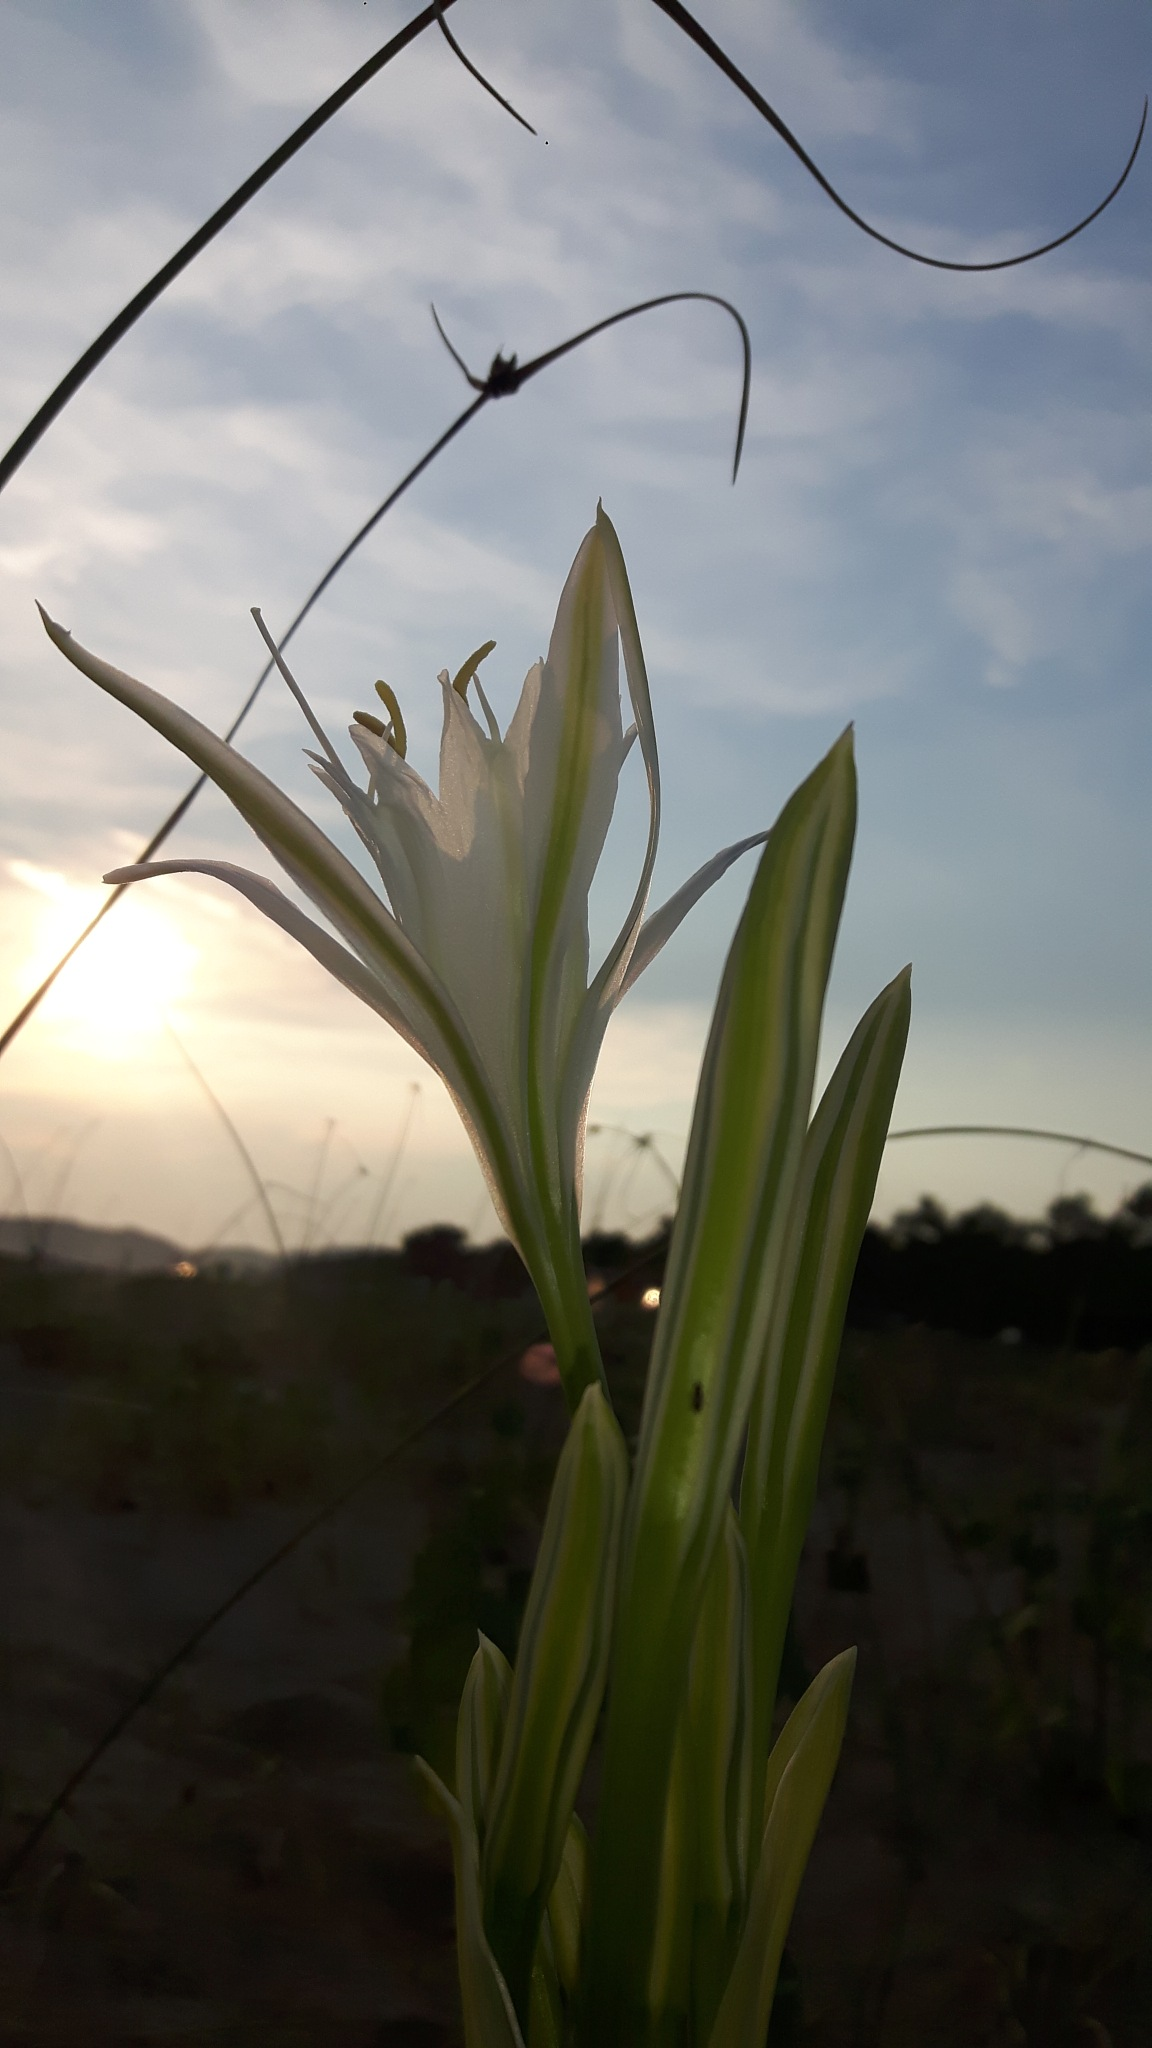 Lilly flower and sunset beauty by Mevludin_Hasanovic